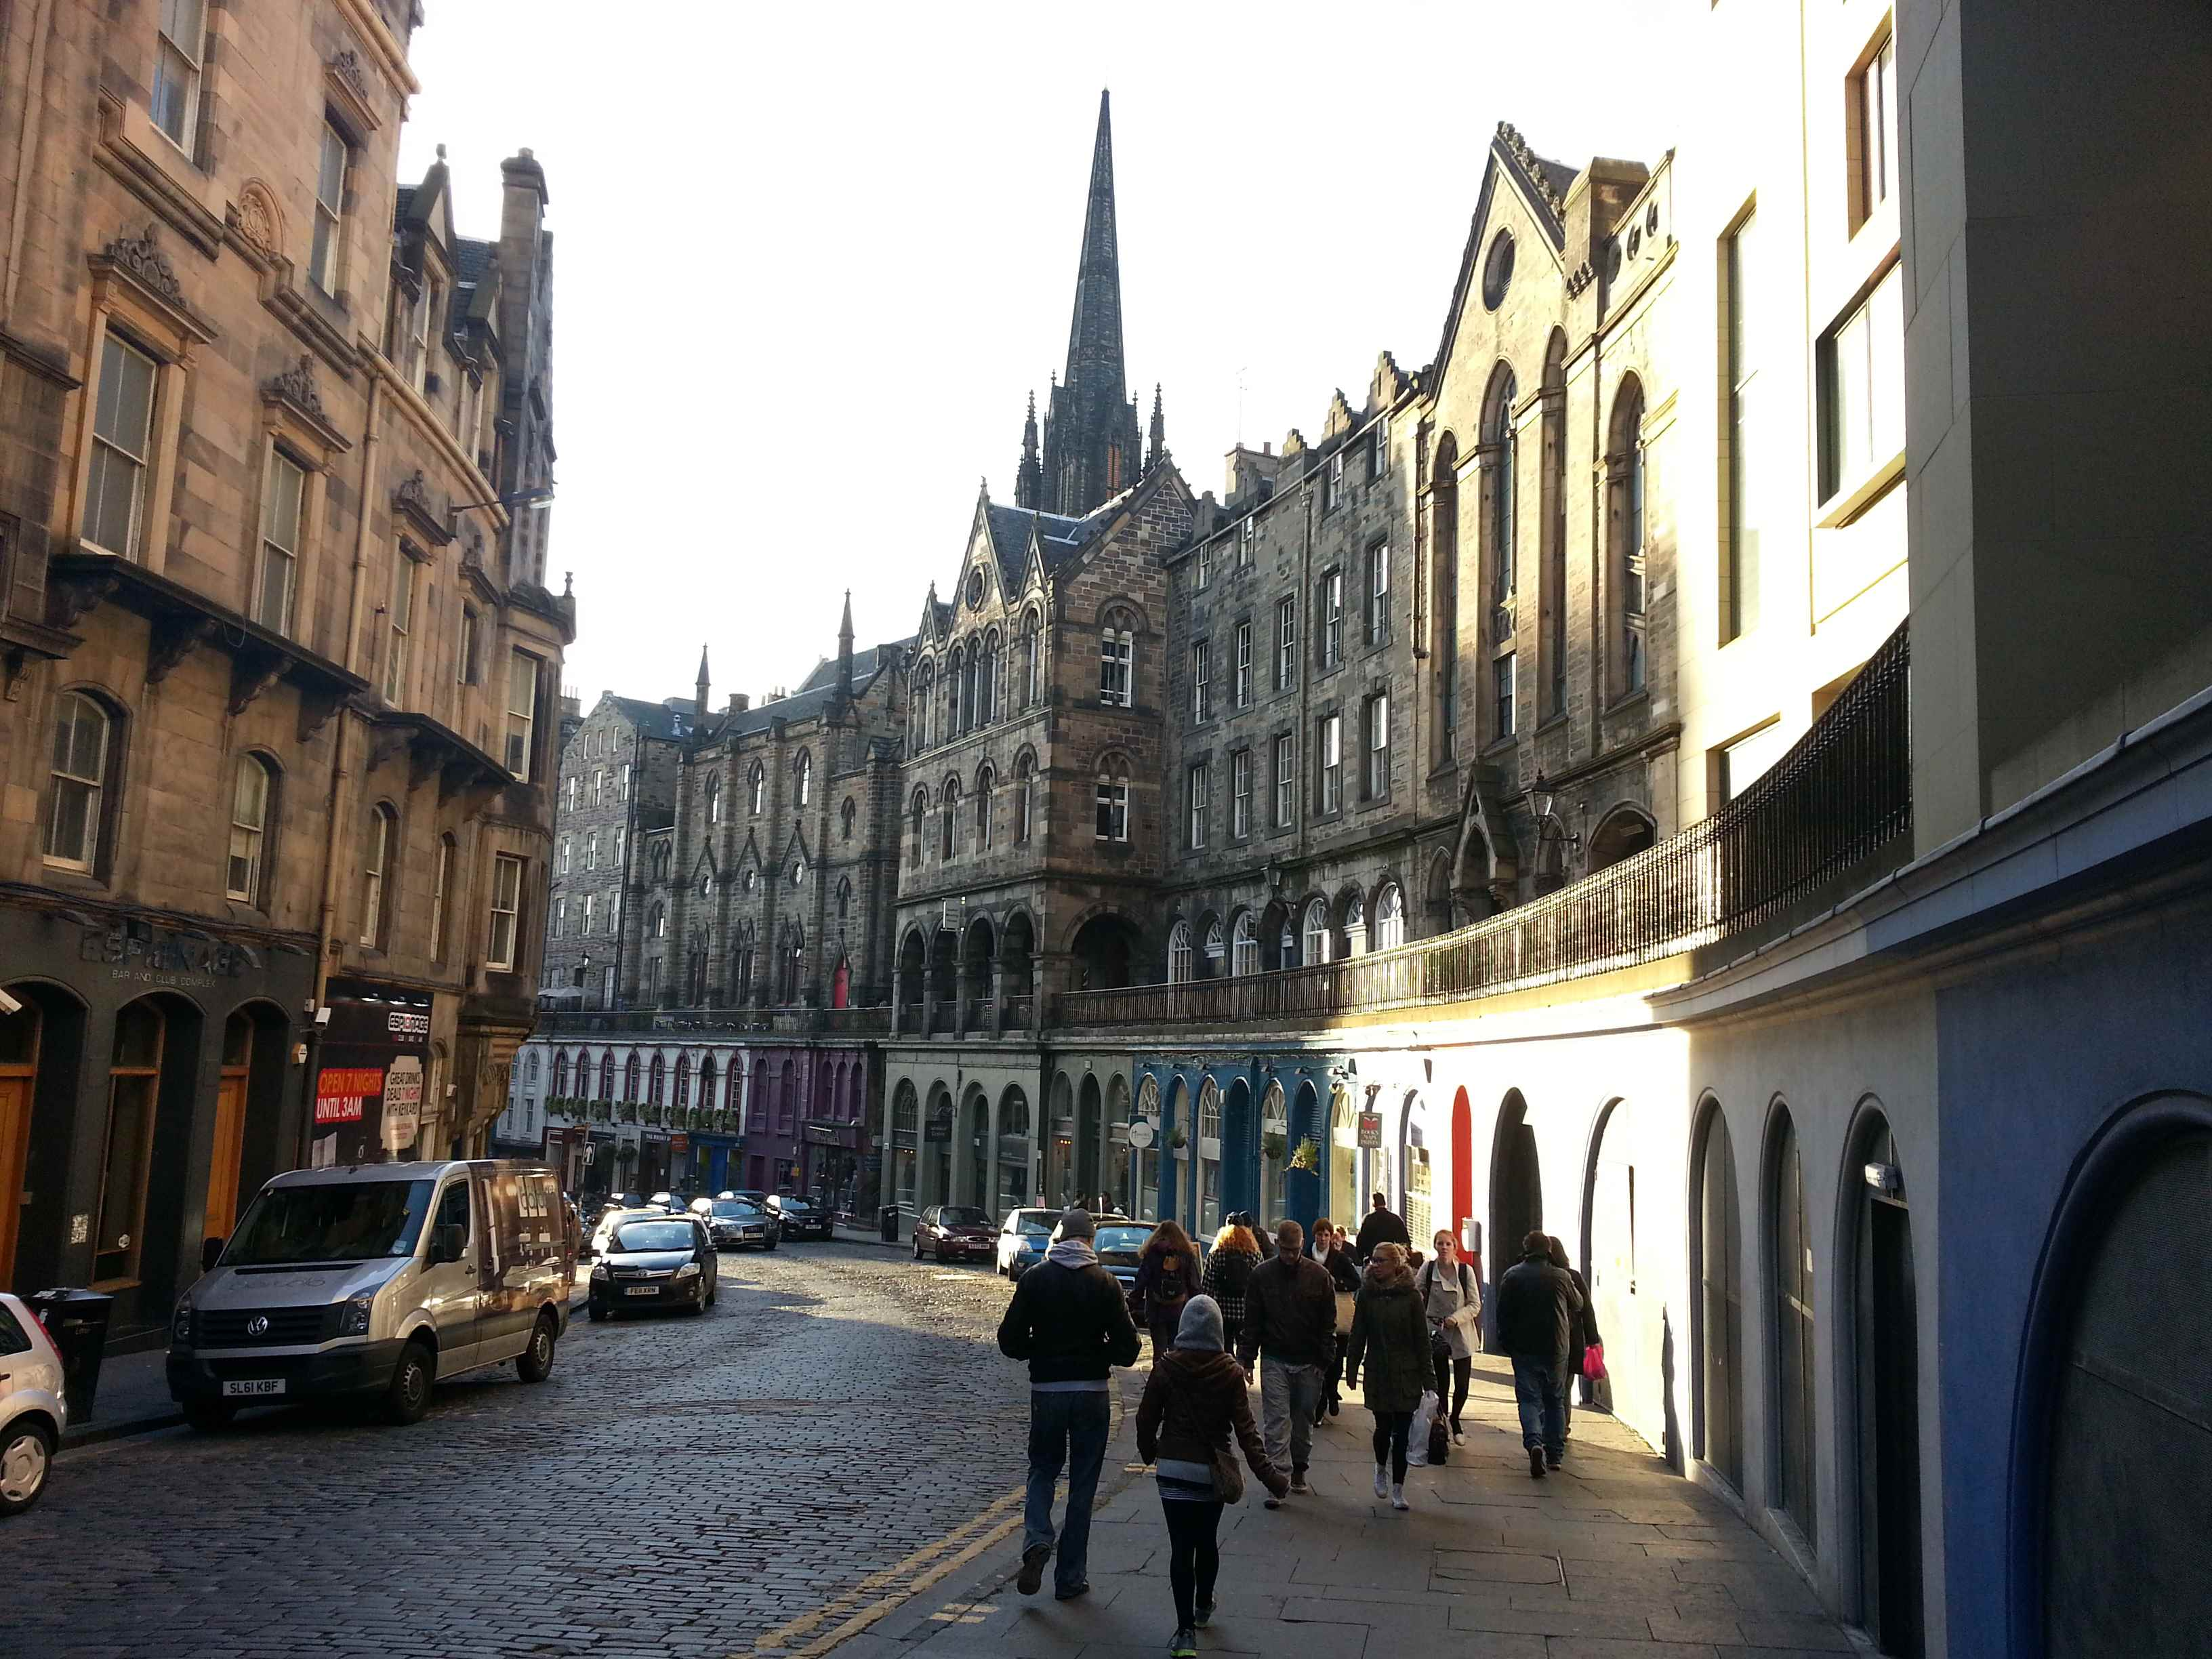 Straße in der Old Town von Edinburgh © Jan Kanter